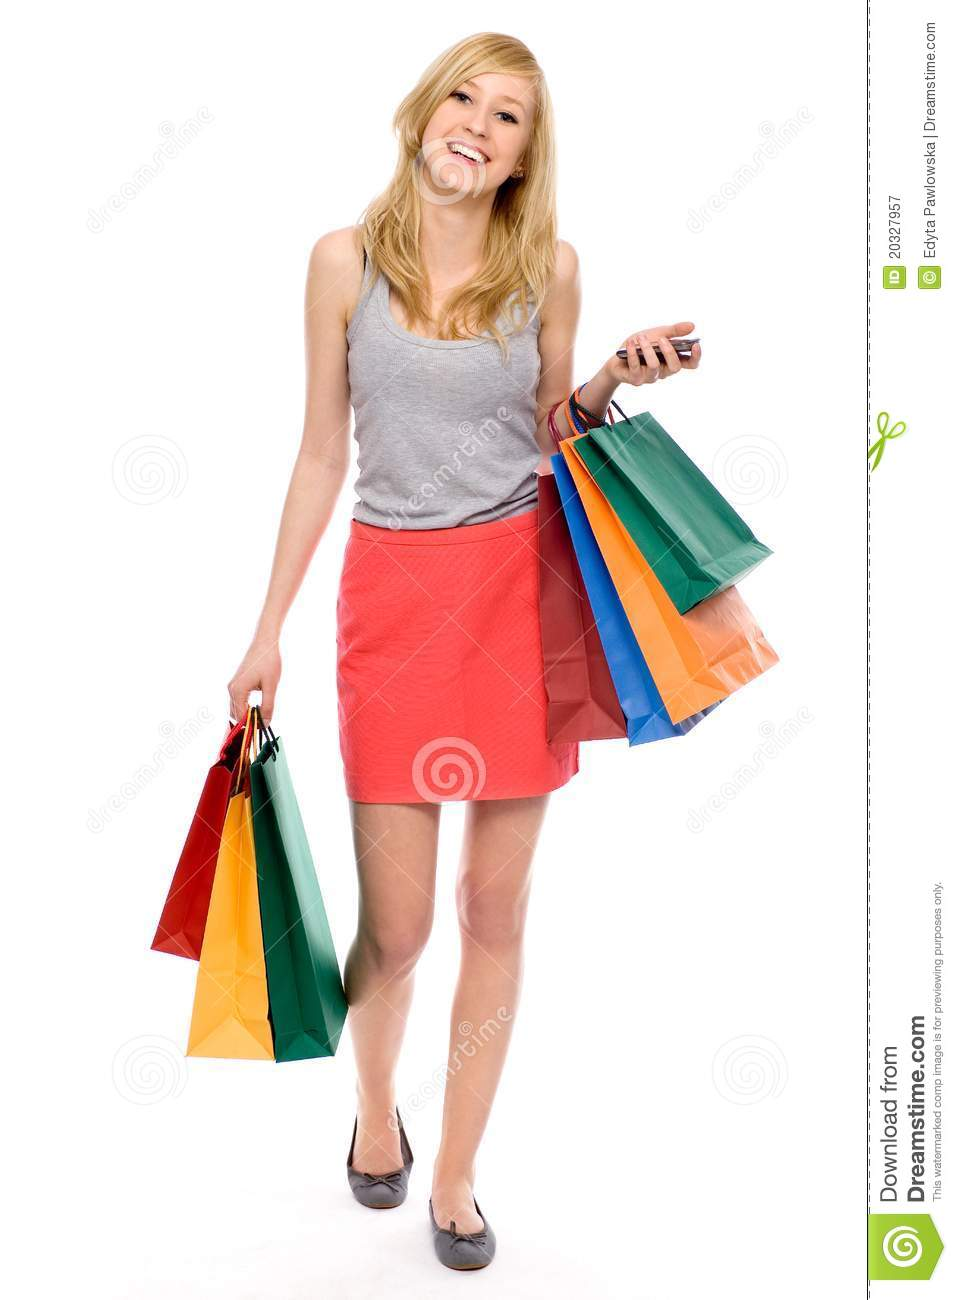 Wonderful Shopping Woman Holding Bags Isolated On Stock Photo 121251316 - Shutterstock